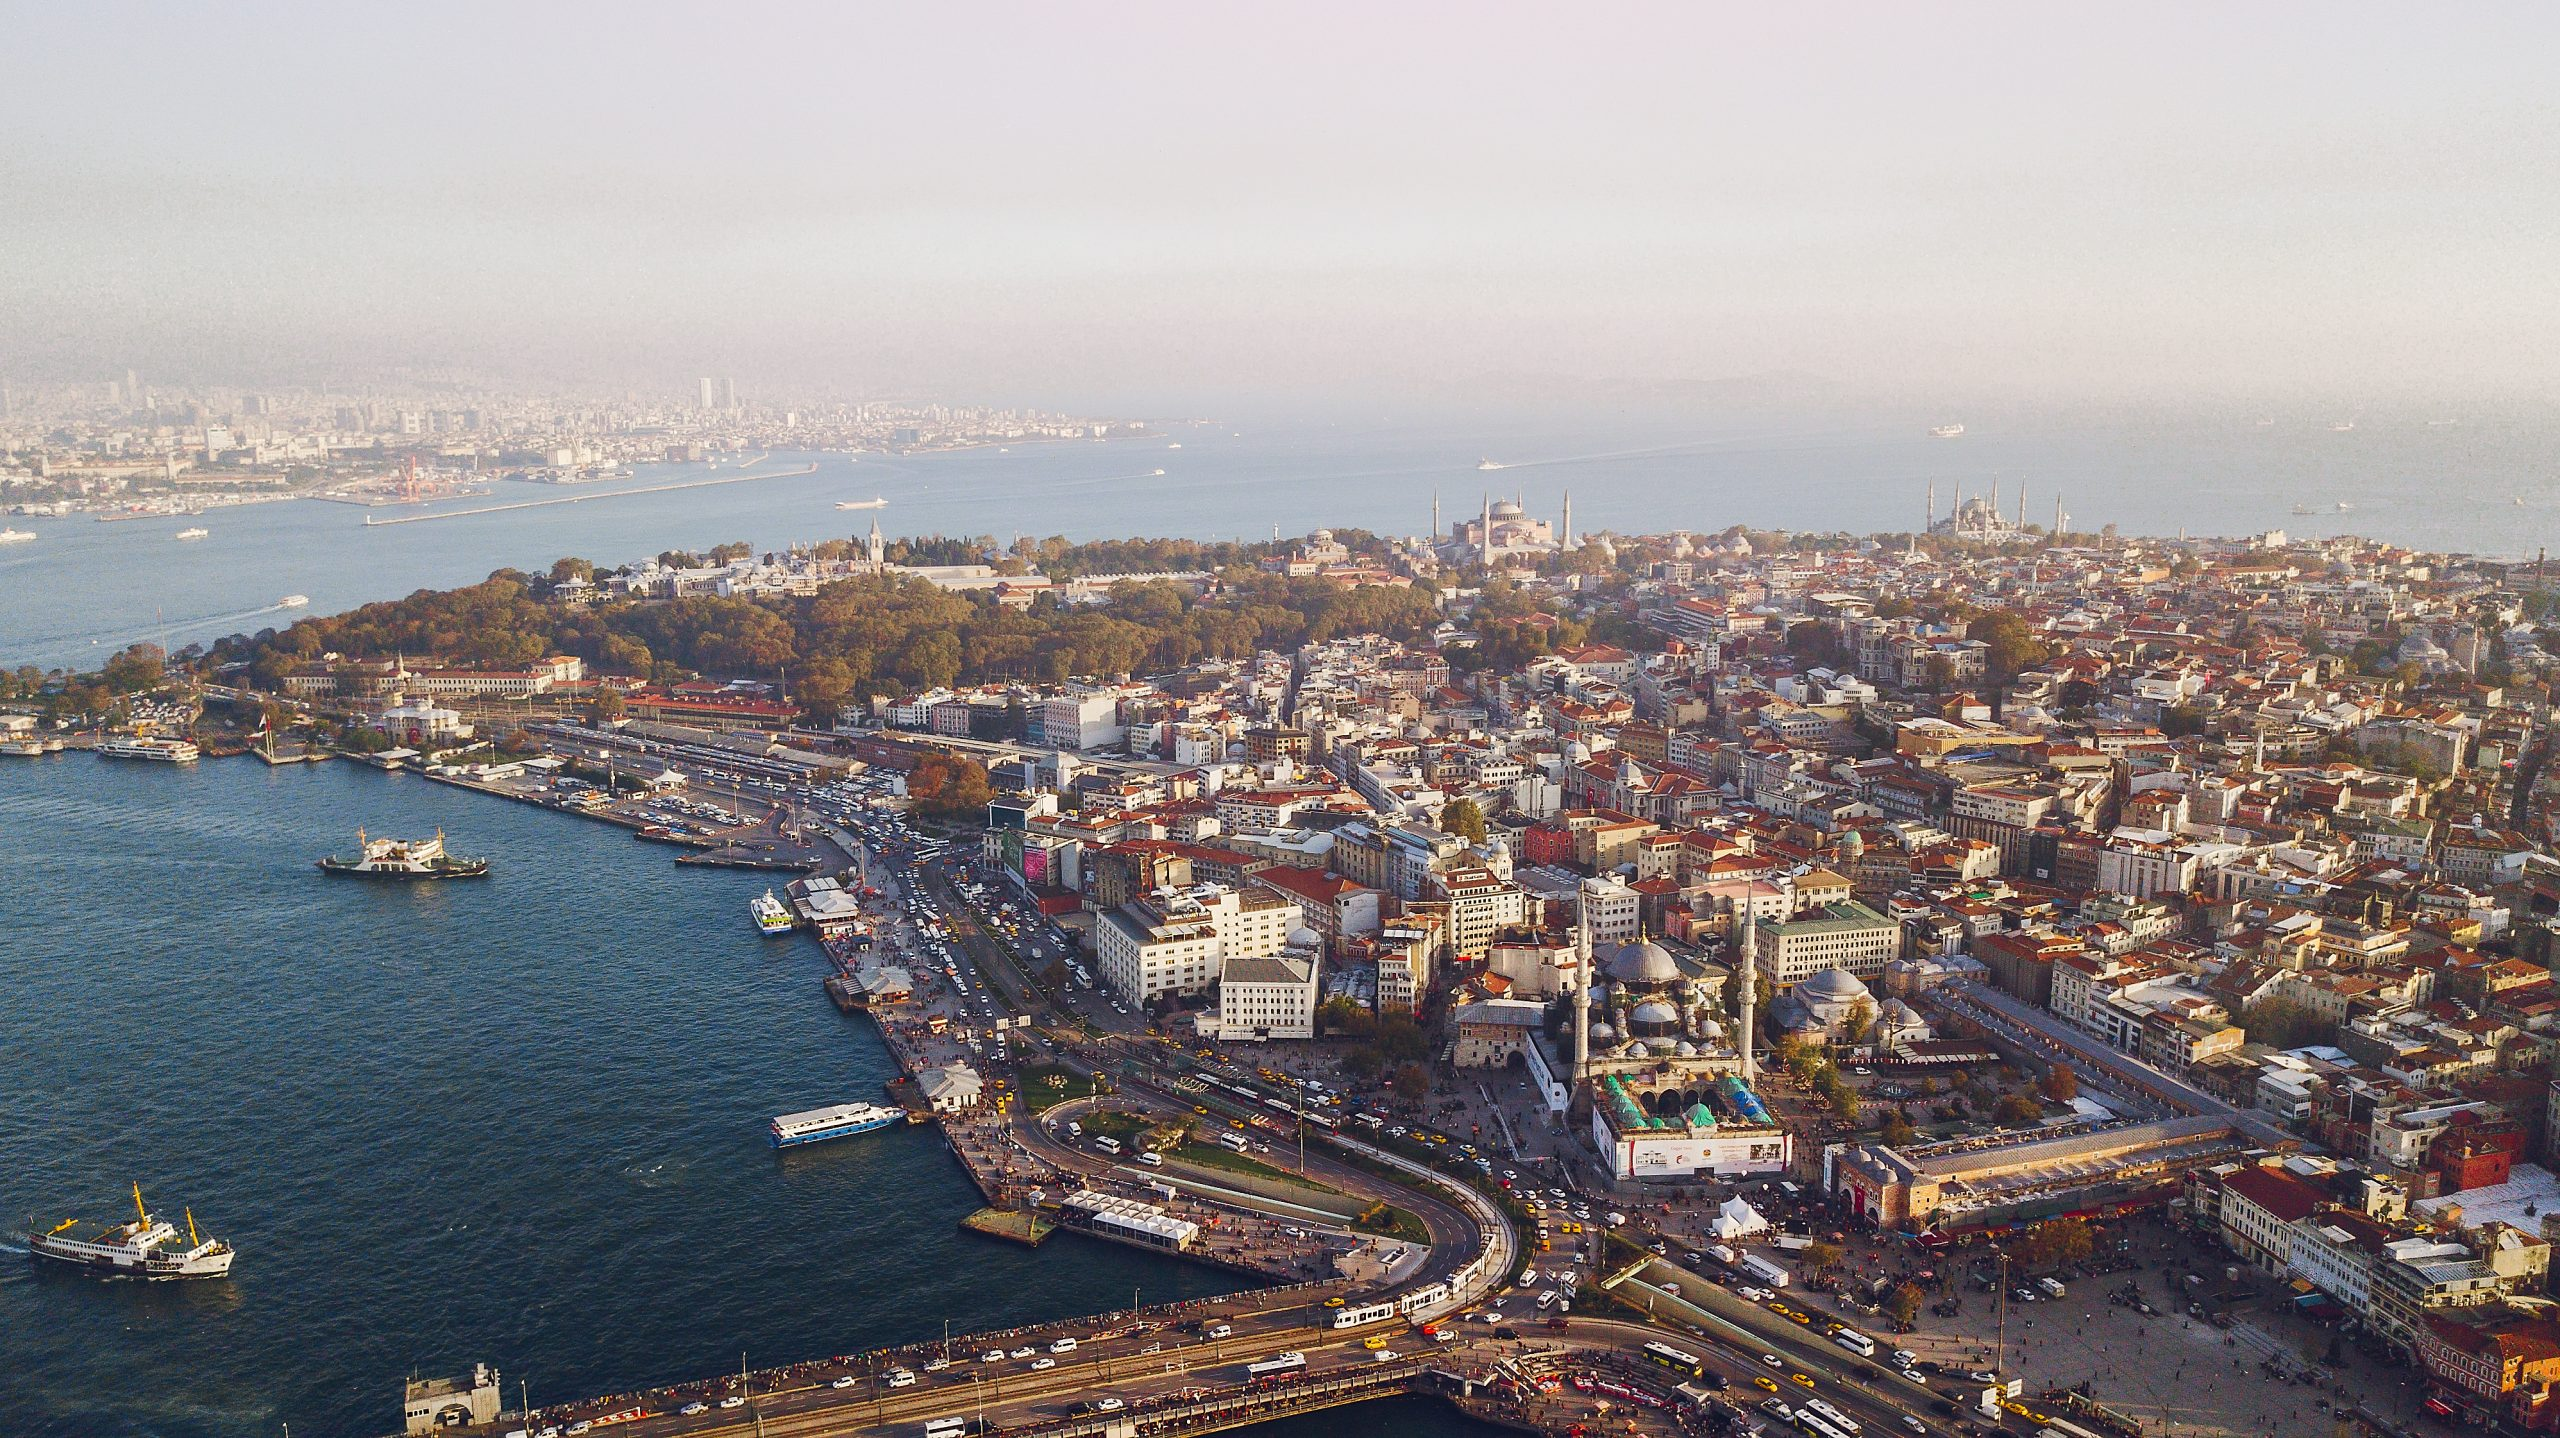 How to Purchase a Property in Istanbul Wisely